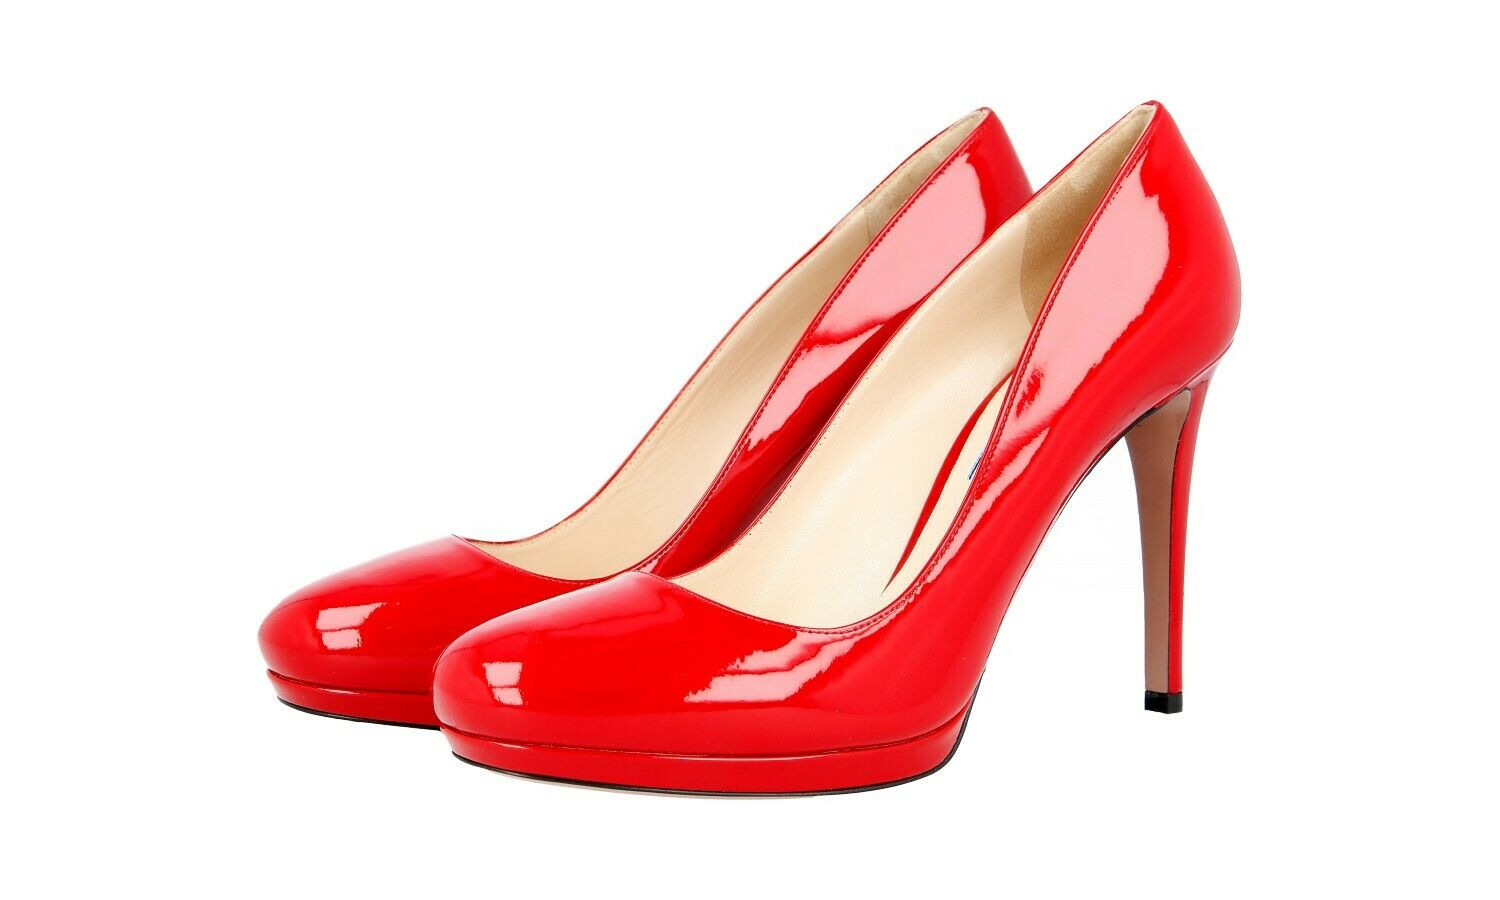 Luxury PRADA Patent Leather Pups scarpe 1IP286 rosso  NEW 40,5 41 UK 7.5  acquista marca